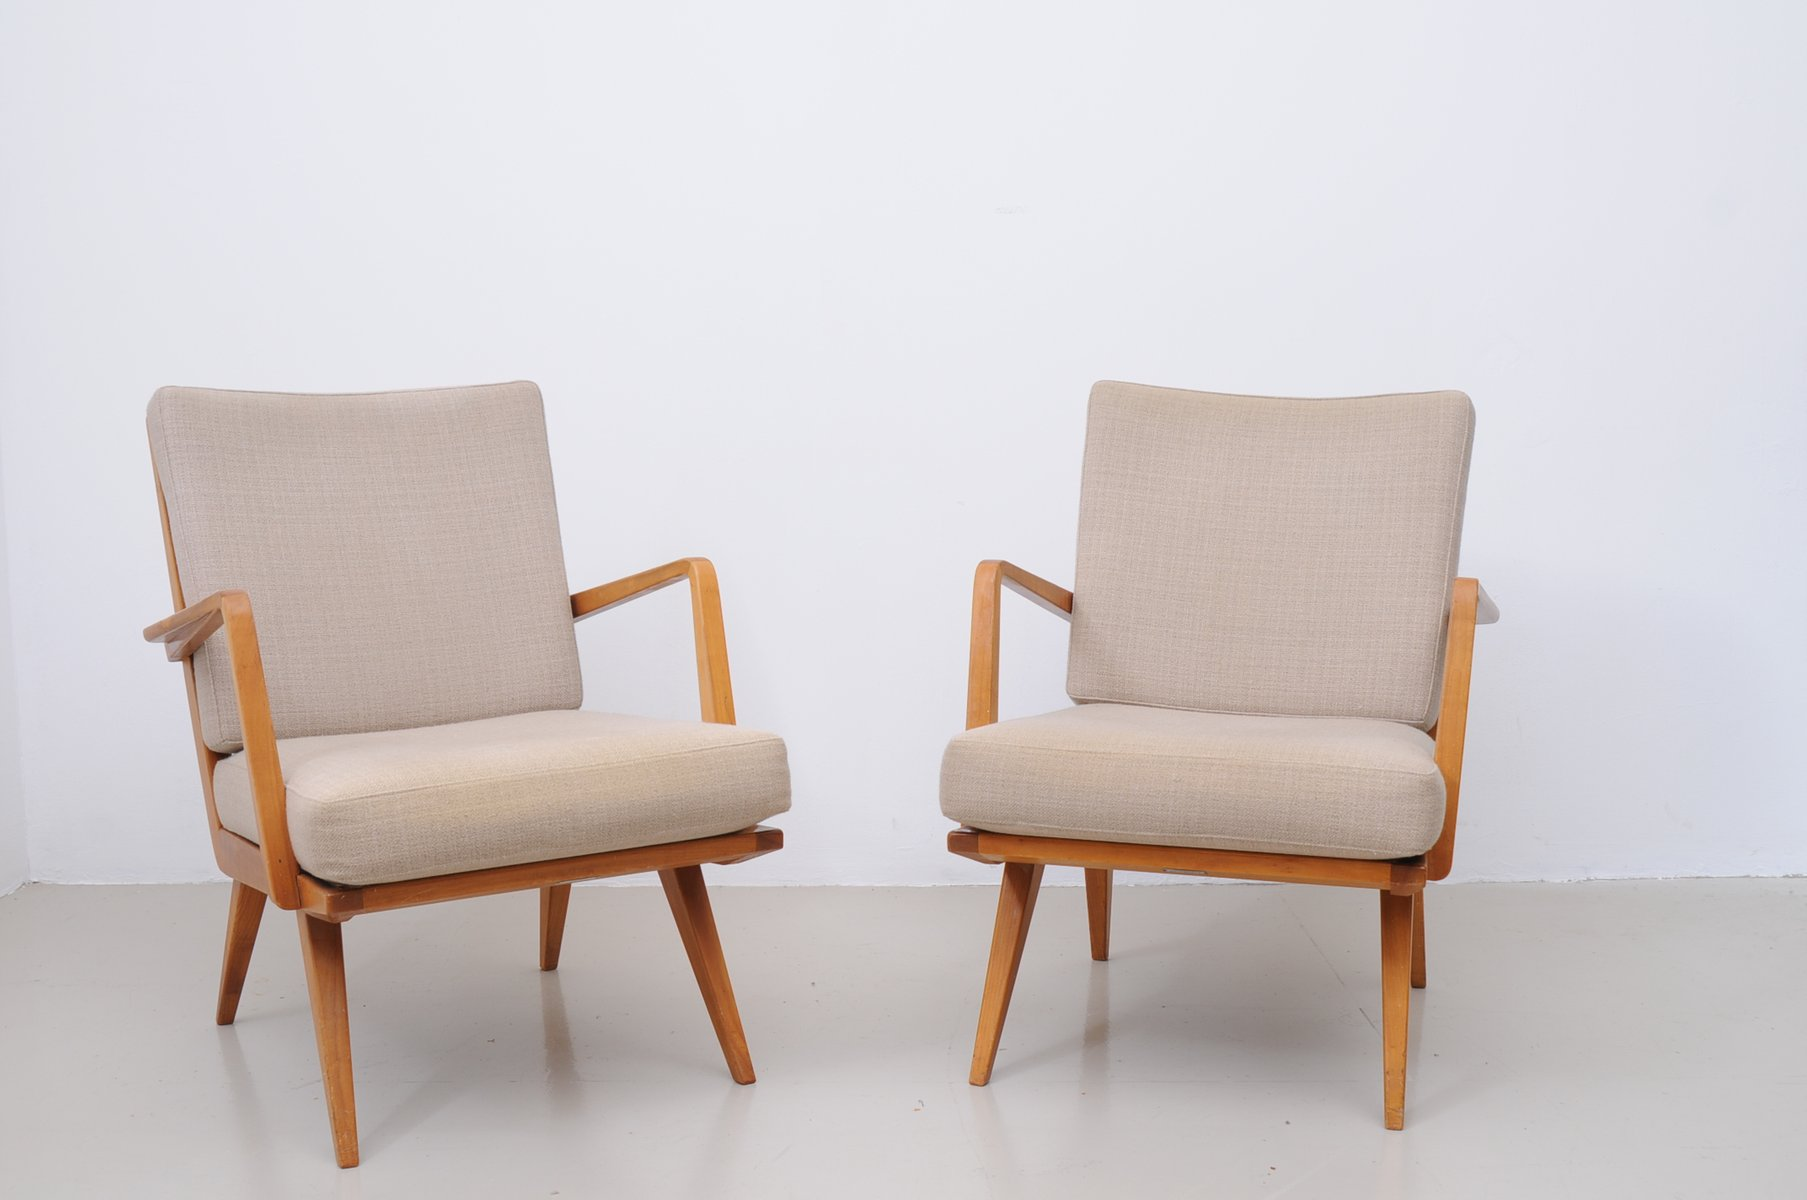 Mid Century Armchairs From Knoll Set Of 2 For Sale At Pamono